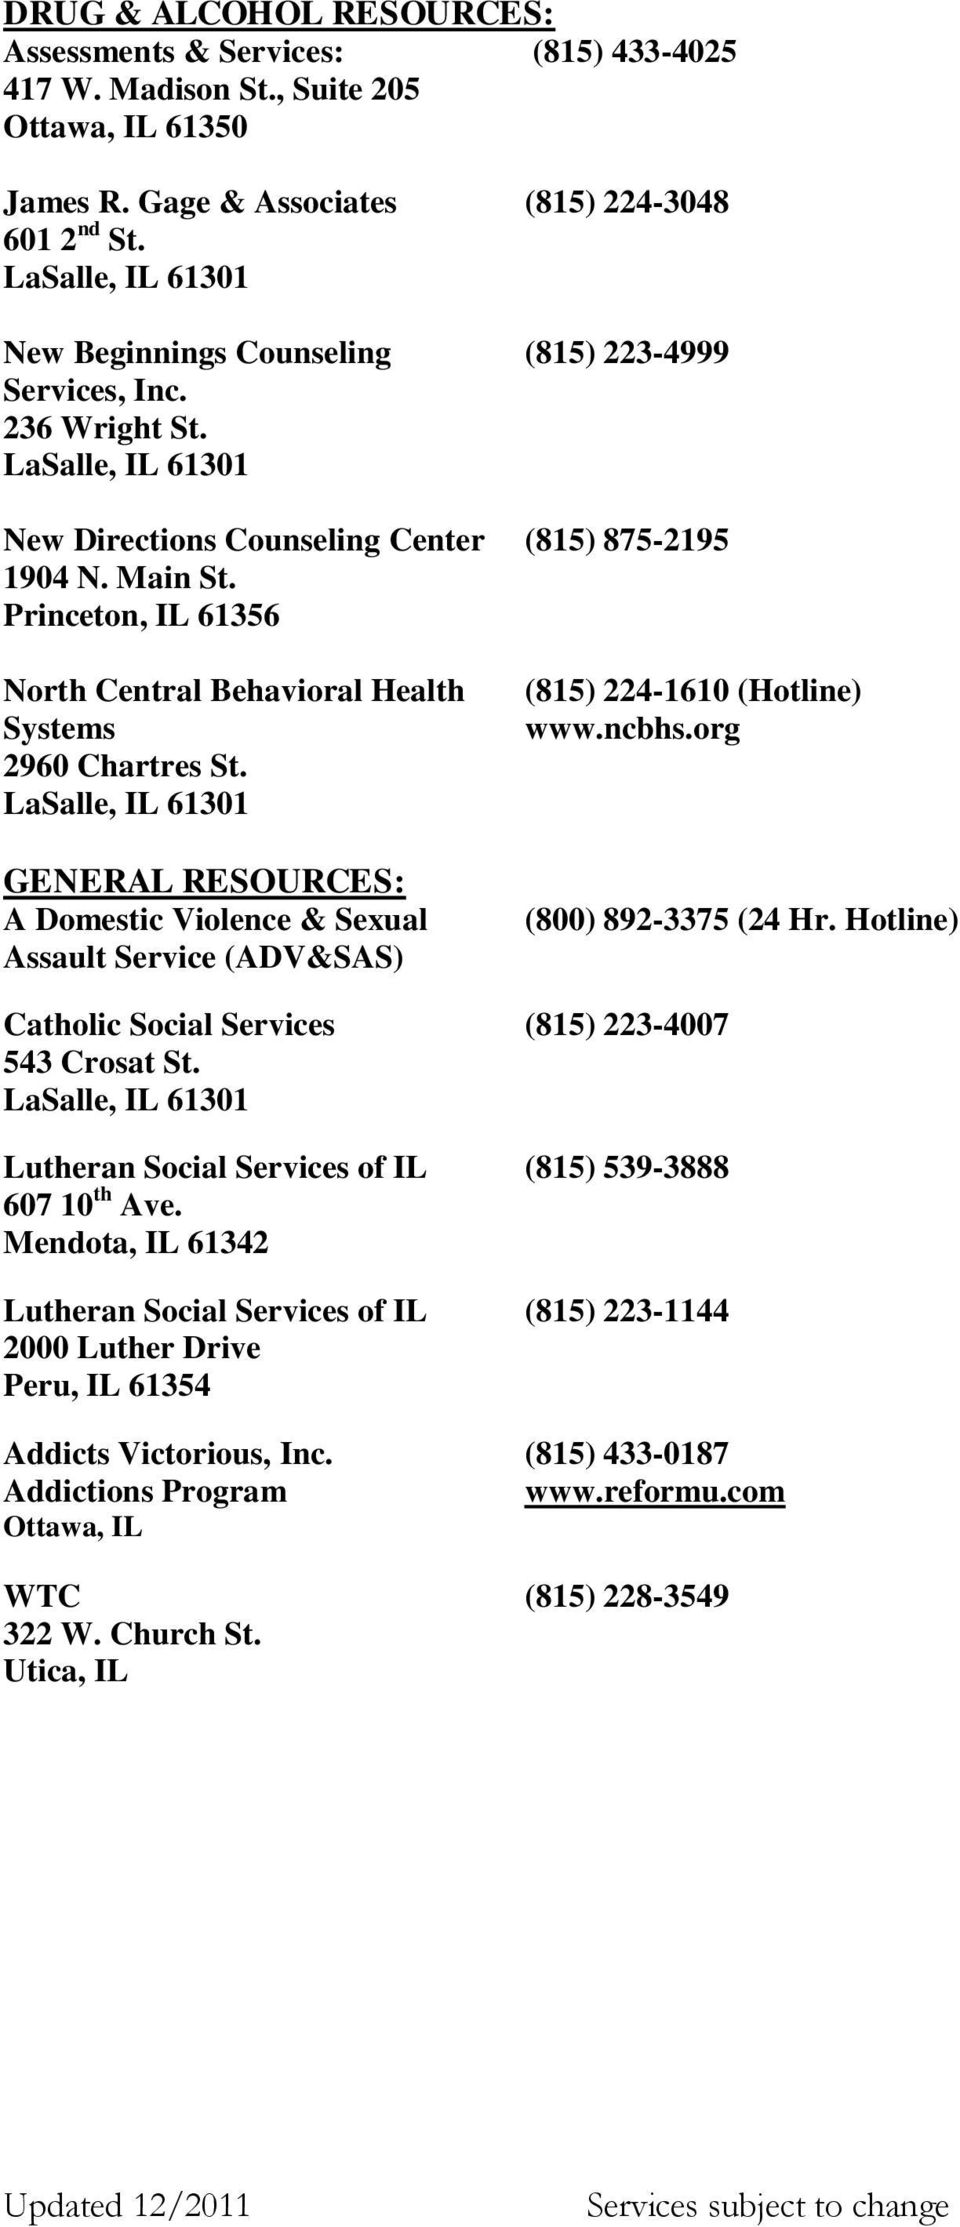 Princeton, IL 61356 North Central Behavioral Health Systems 2960 Chartres St. LaSalle, IL 61301 GENERAL RESOURCES: A Domestic Violence & Sexual Assault Service (ADV&SAS) (815) 224-1610 (Hotline) www.